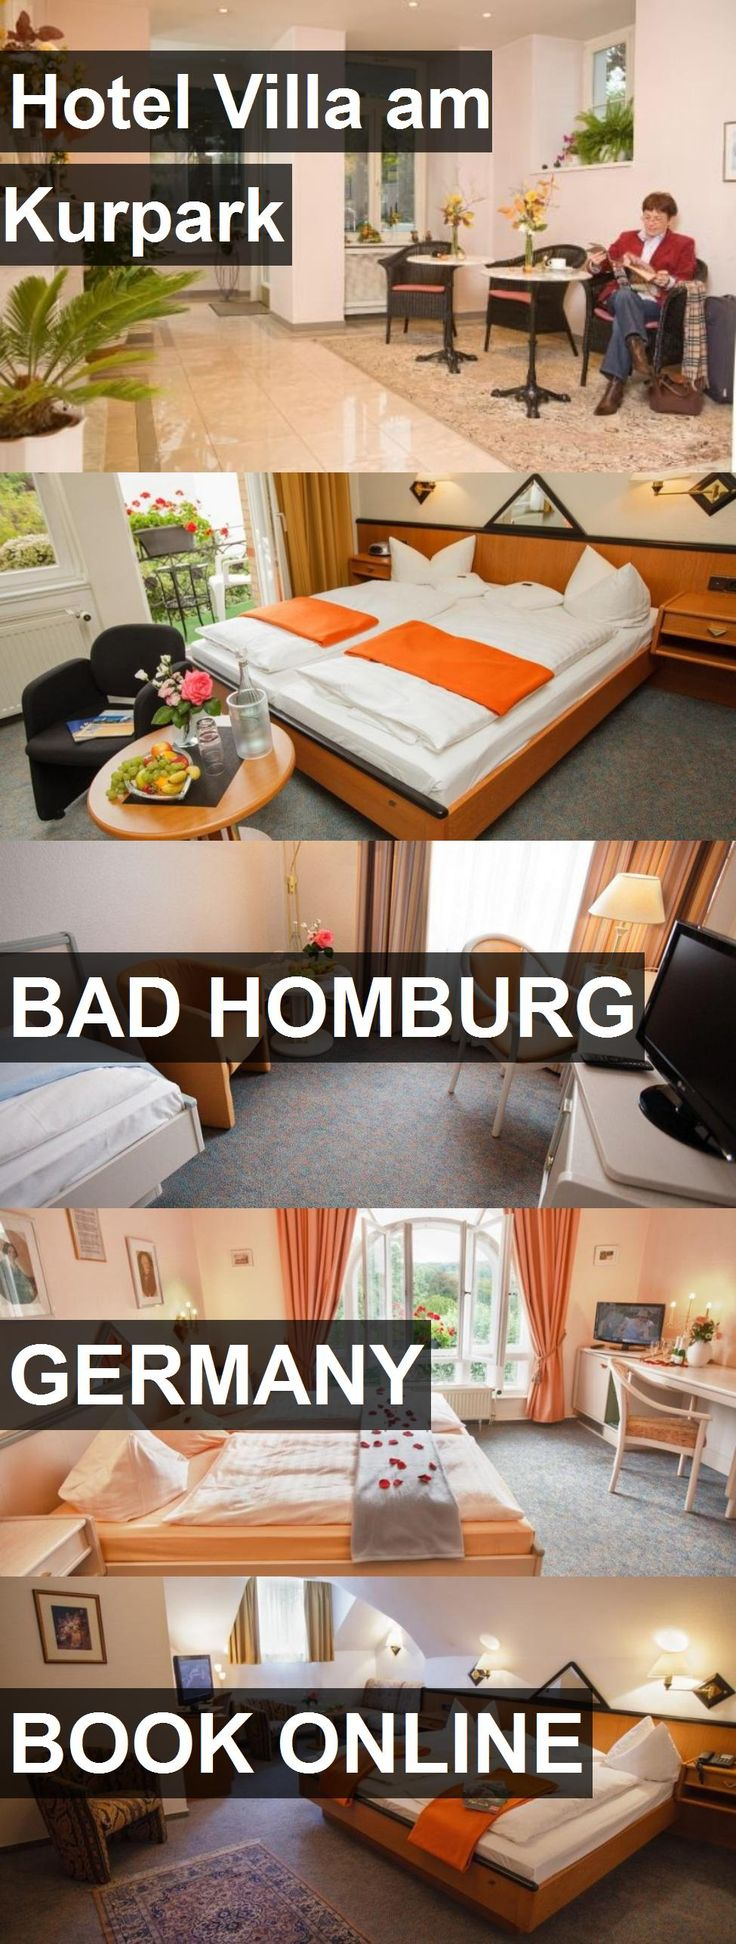 Hotel Hotel Villa am Kurpark in Bad Homburg, Germany. For more information, photos, reviews and best prices please follow the link. #Germany #BadHomburg #HotelVillaamKurpark #hotel #travel #vacation